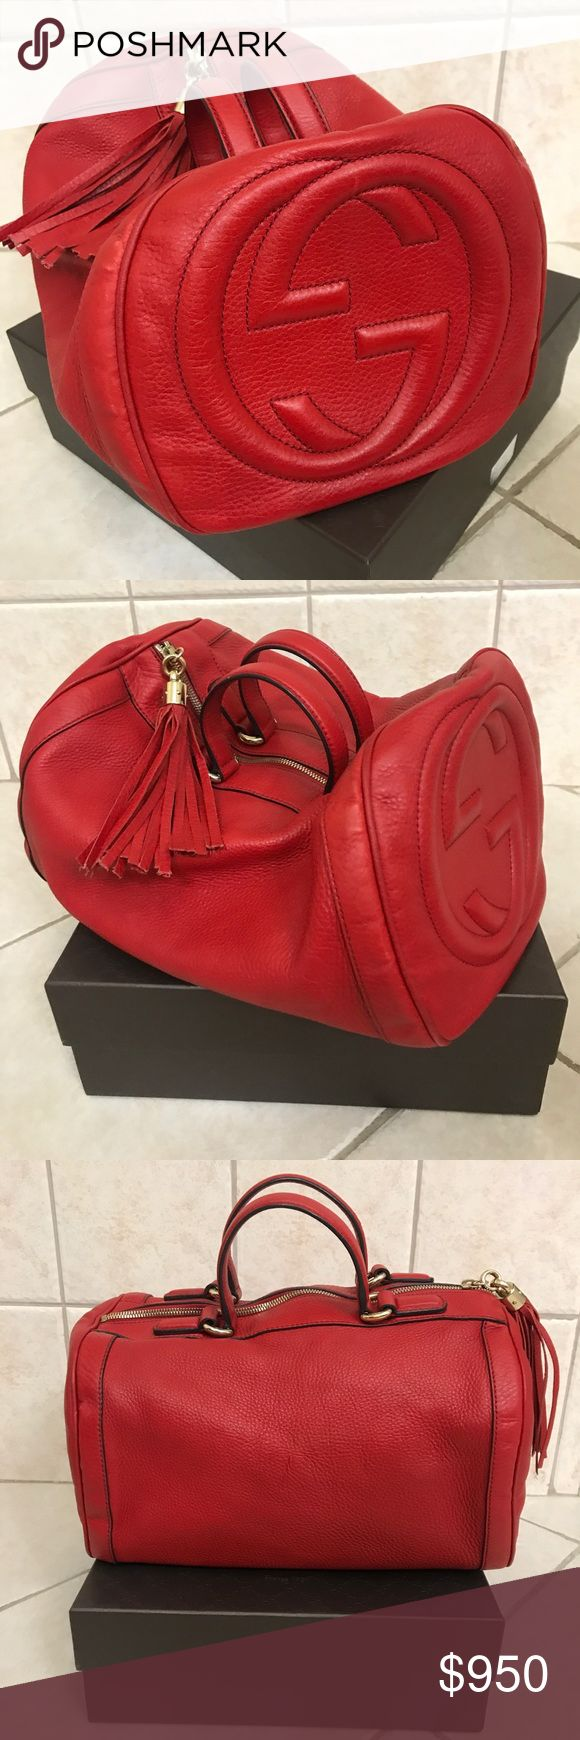 GUCCI soft leather top Handle Red Handbag Pre-owned GUCCI soft leather handbag A softly structured shape Color : Red 100% Authentic  Comes with original dust bag , no box ! Round shape  Leather material No odor or damage smoke free home Short handles  Metal feet Zip closure  Inside pockets GG logo in one side of the bag Gucci Bags Satchels